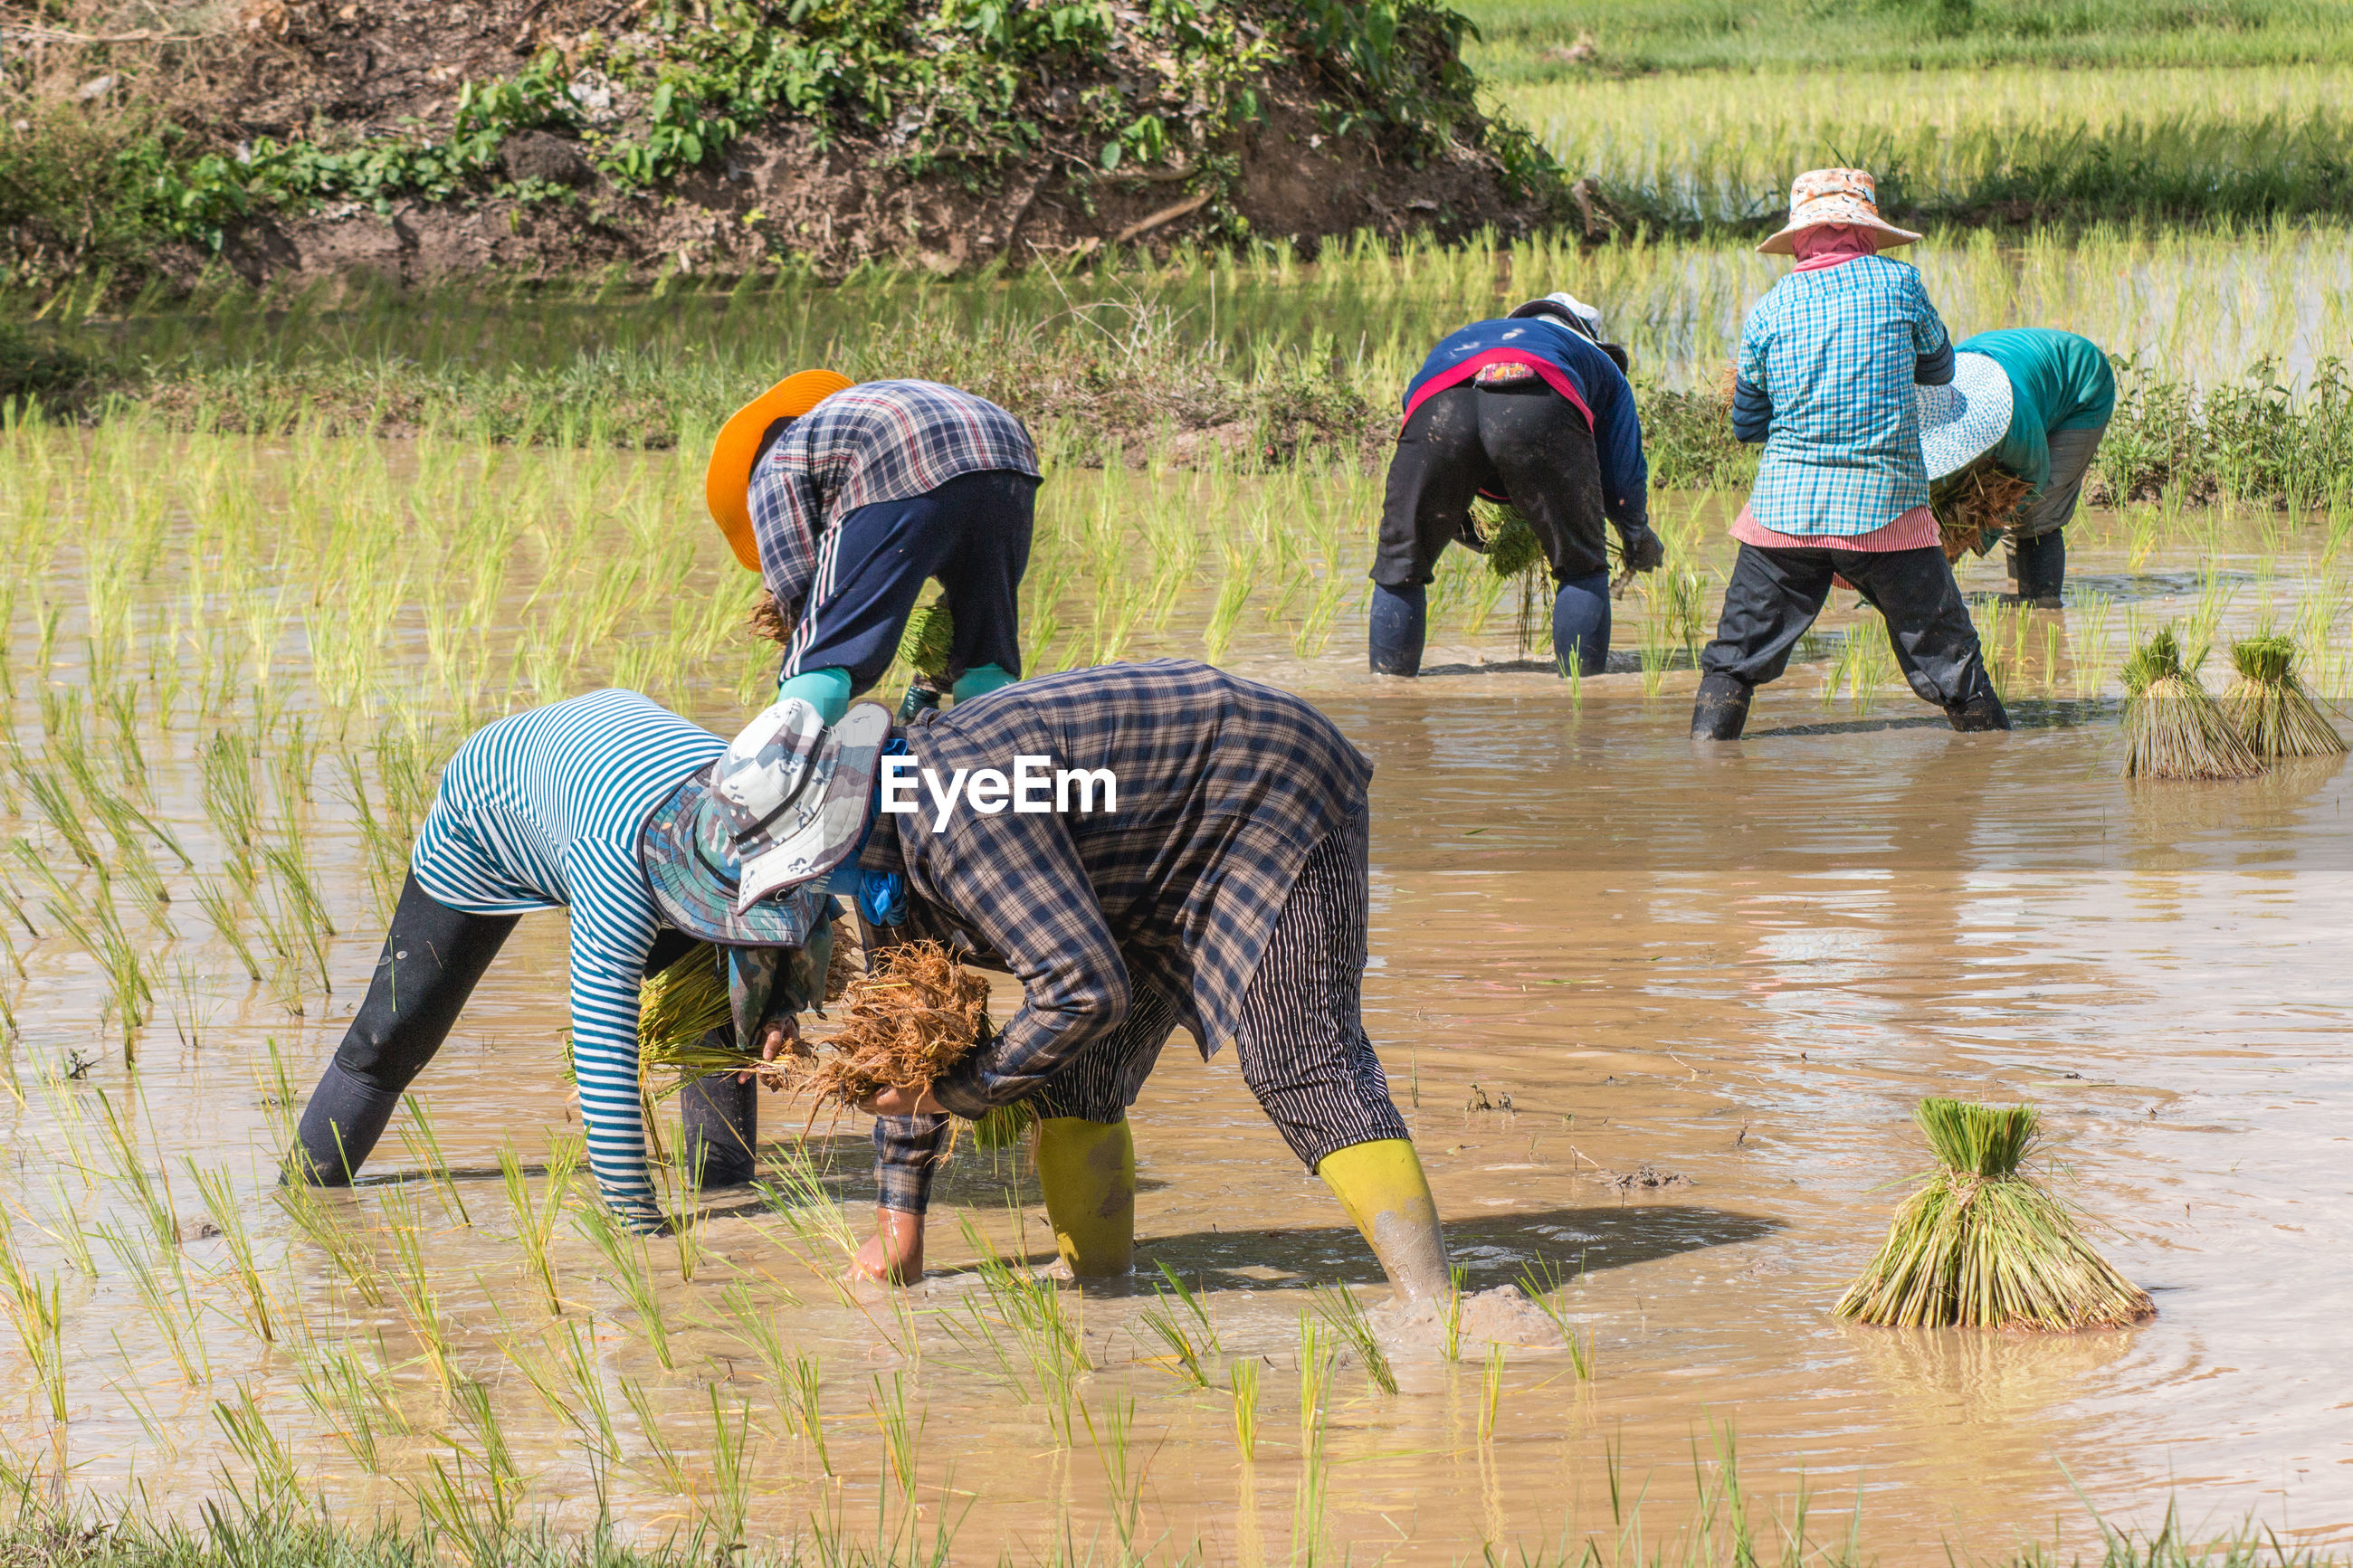 Farmers planting rice plants on field during monsoon